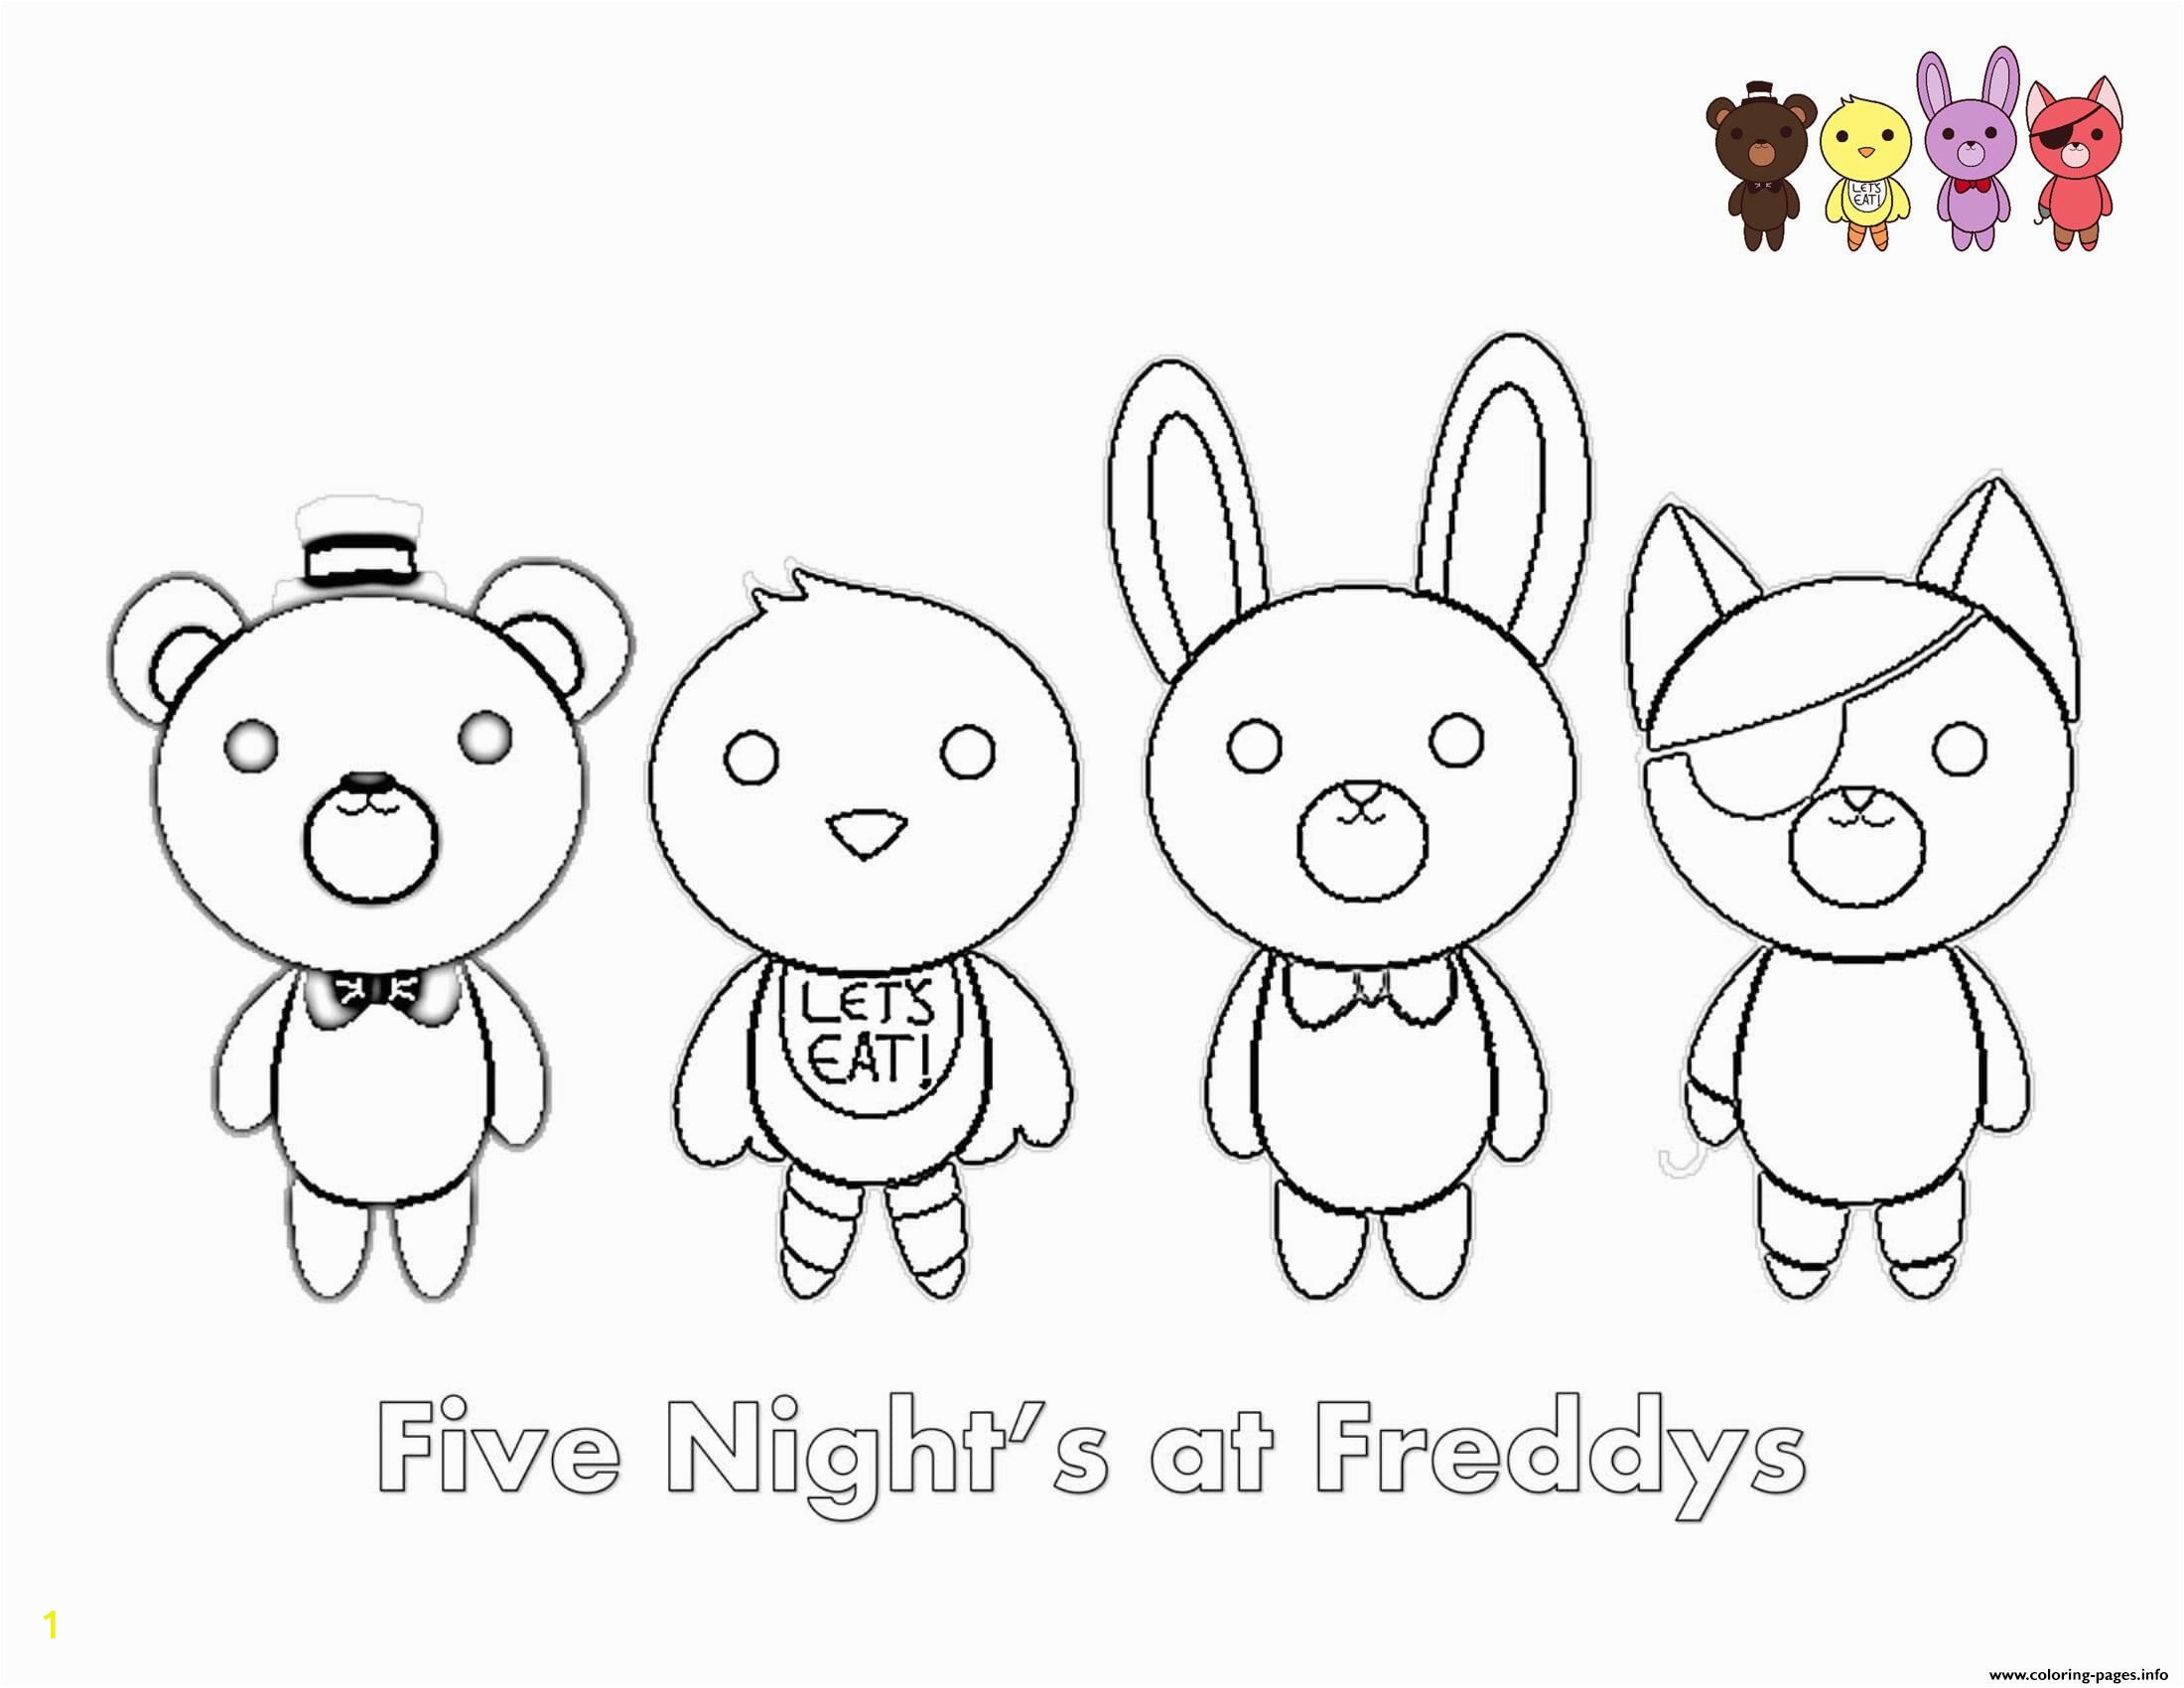 63ba05e8aada2447ecb36d aa60a cute fnaf fnaf coloring pages printable 2200 1700